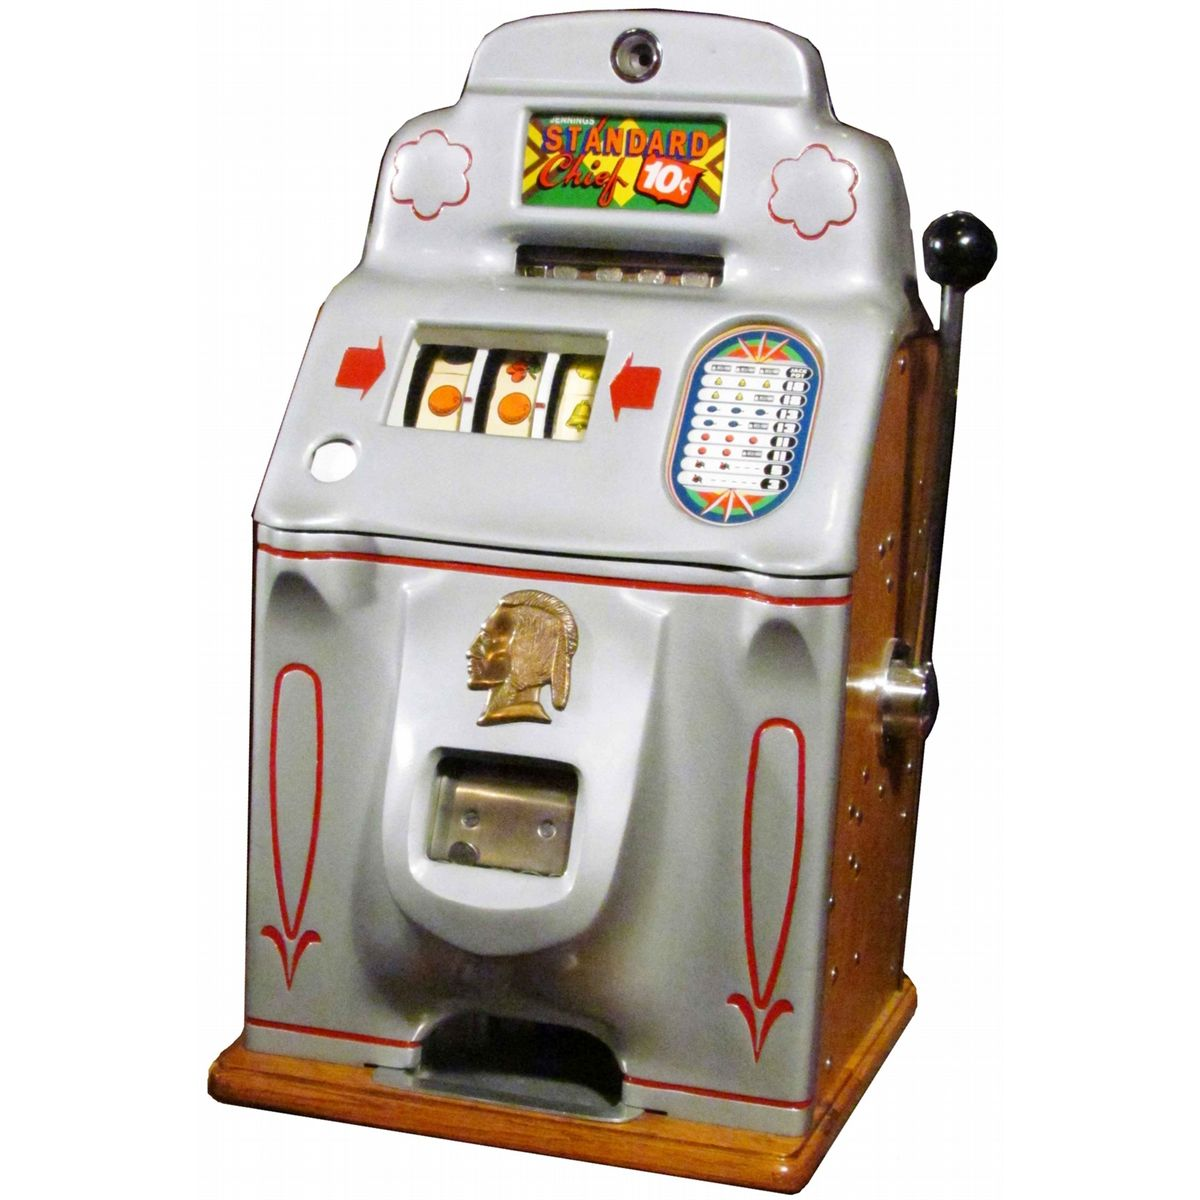 Jennings standard chief slot machine taking a gamble quotes